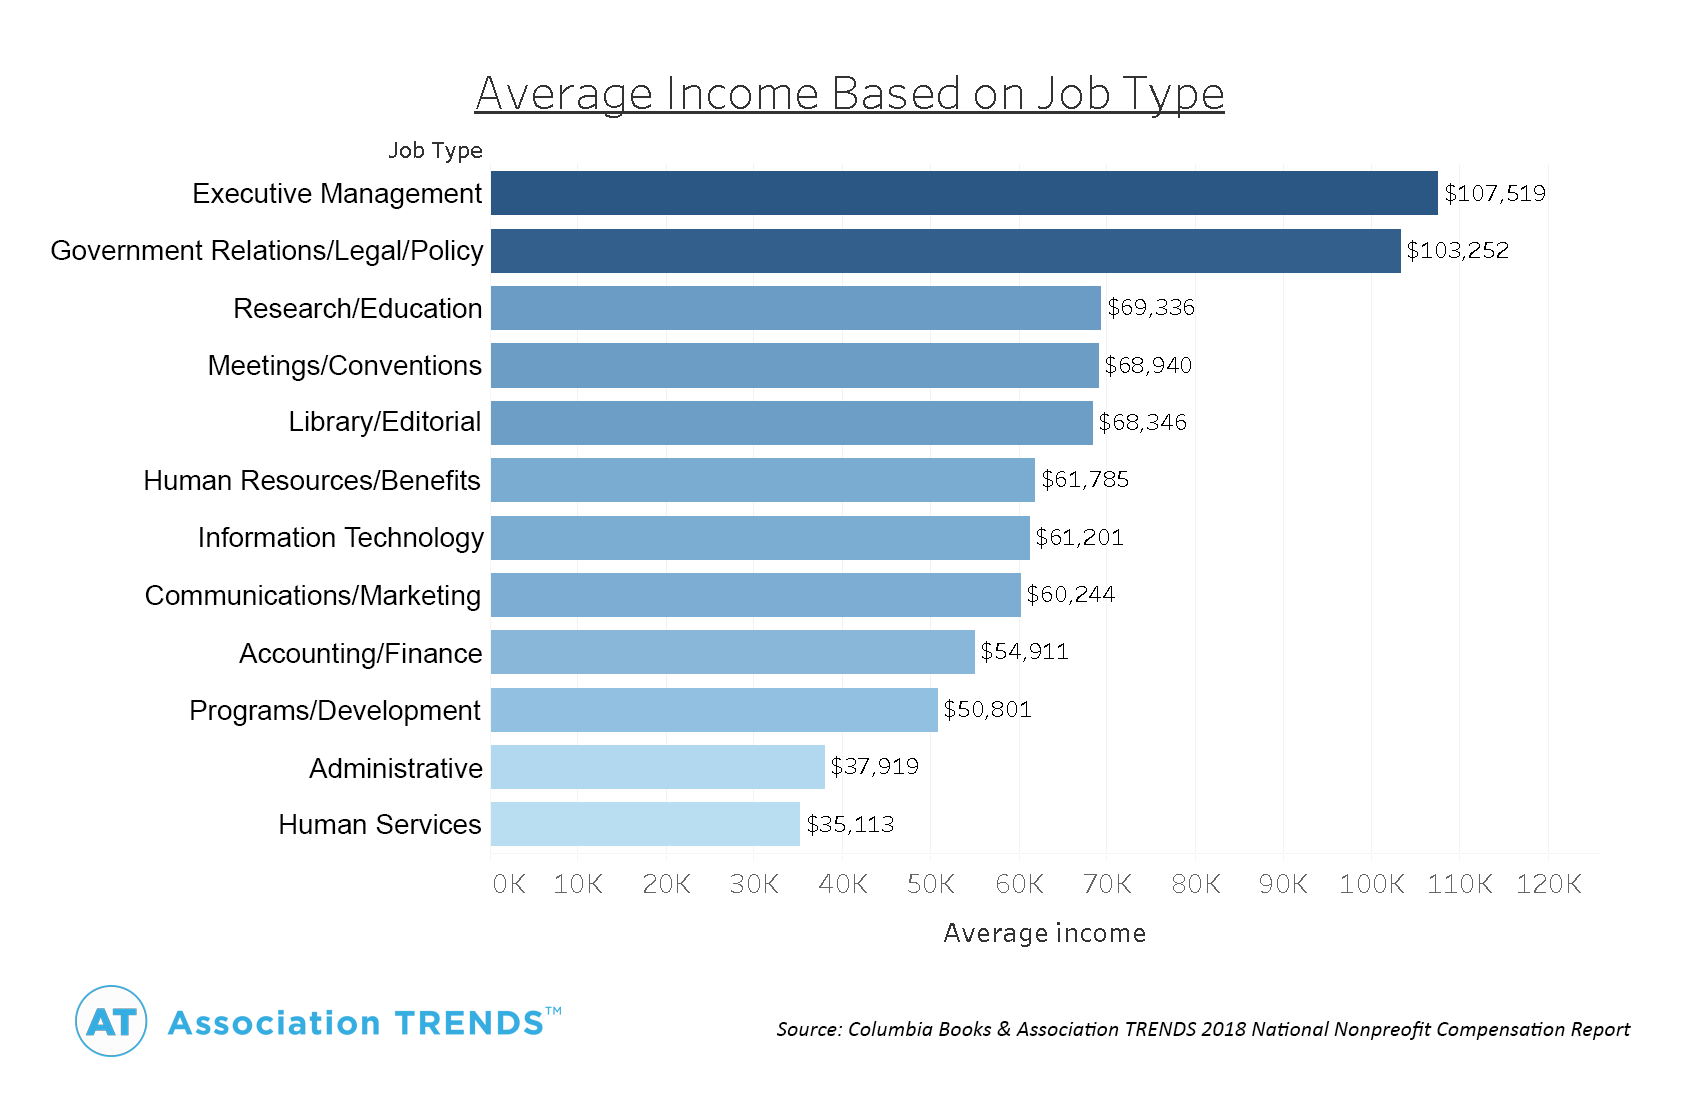 Is Your Salary Above Or Below The National Average For Job Type